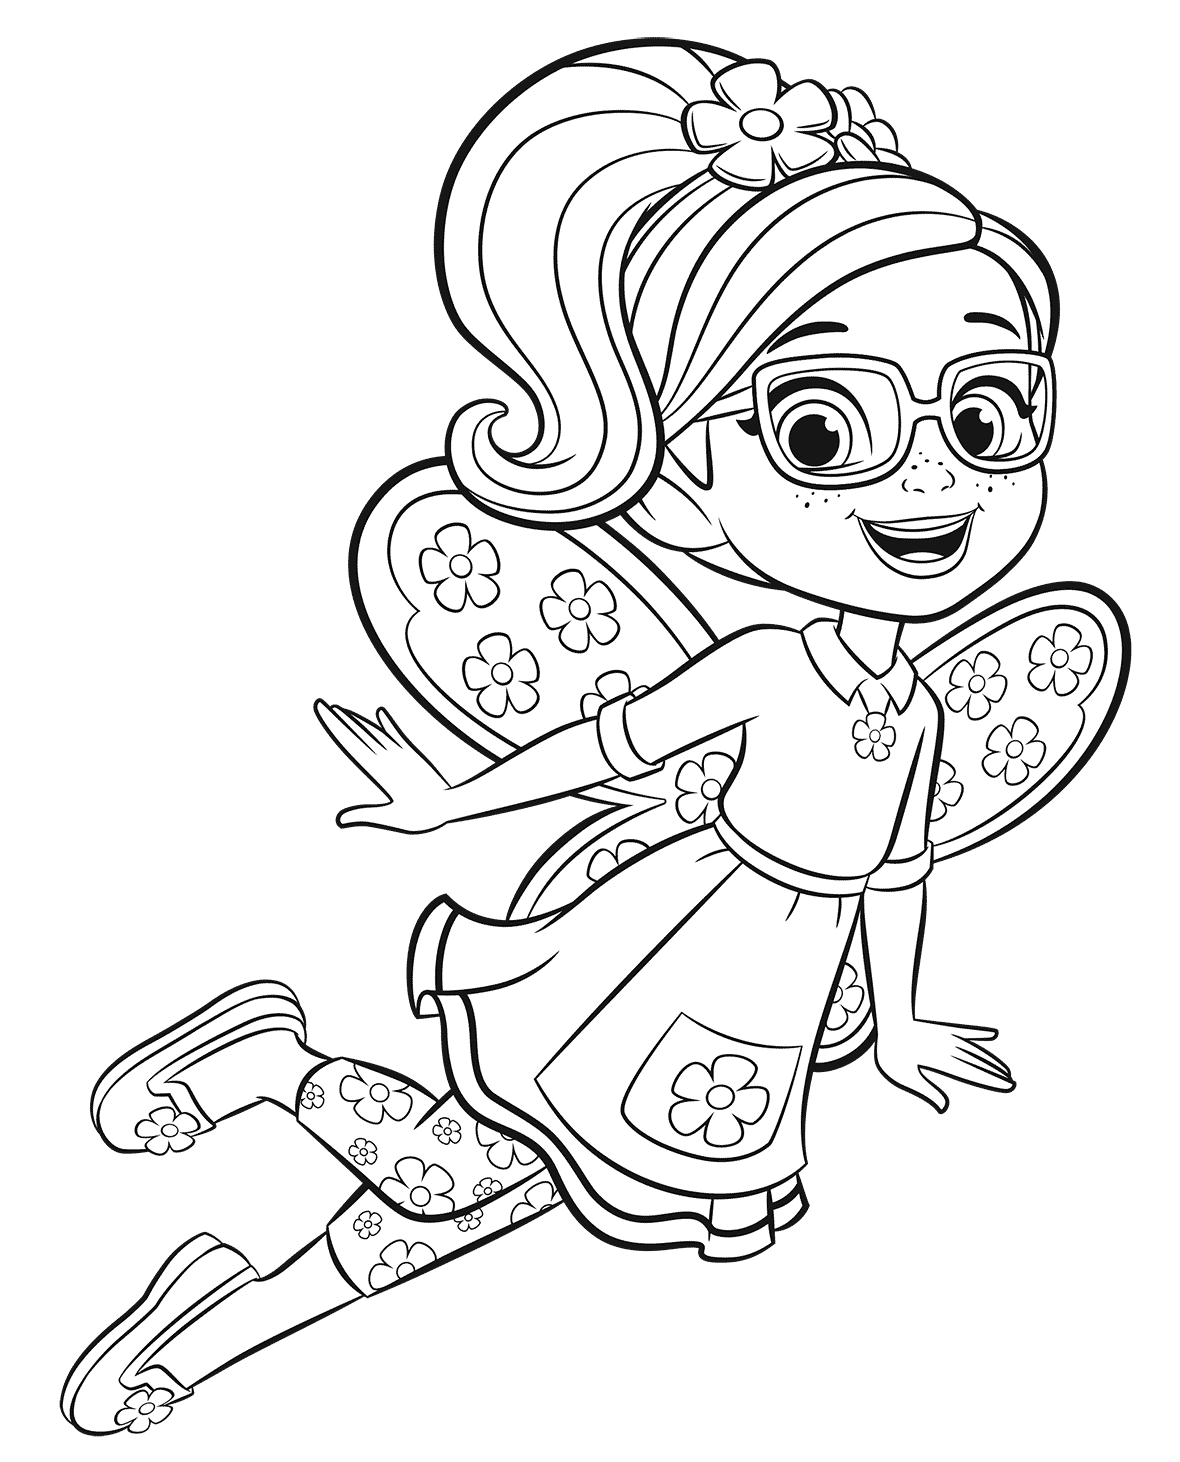 dazzle coloring pages for children - photo#22